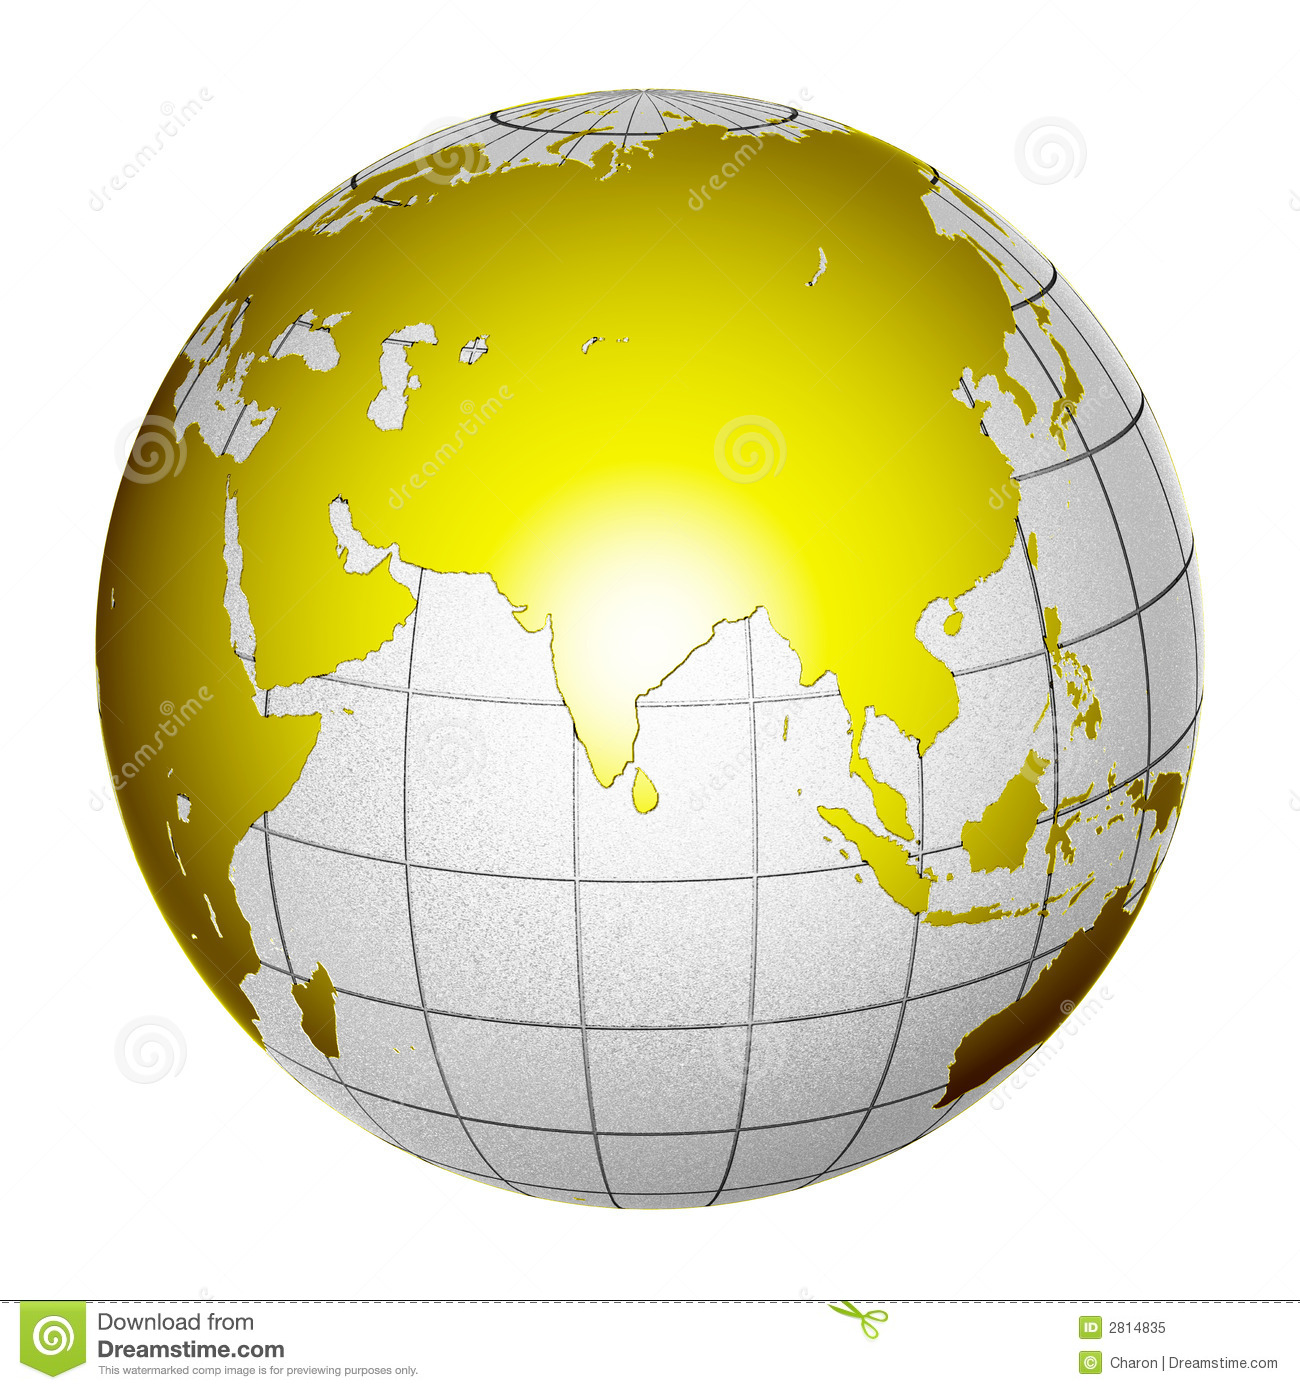 Planet globe earth 3d isolated stock illustration illustration planet globe earth 3d isolated india core gumiabroncs